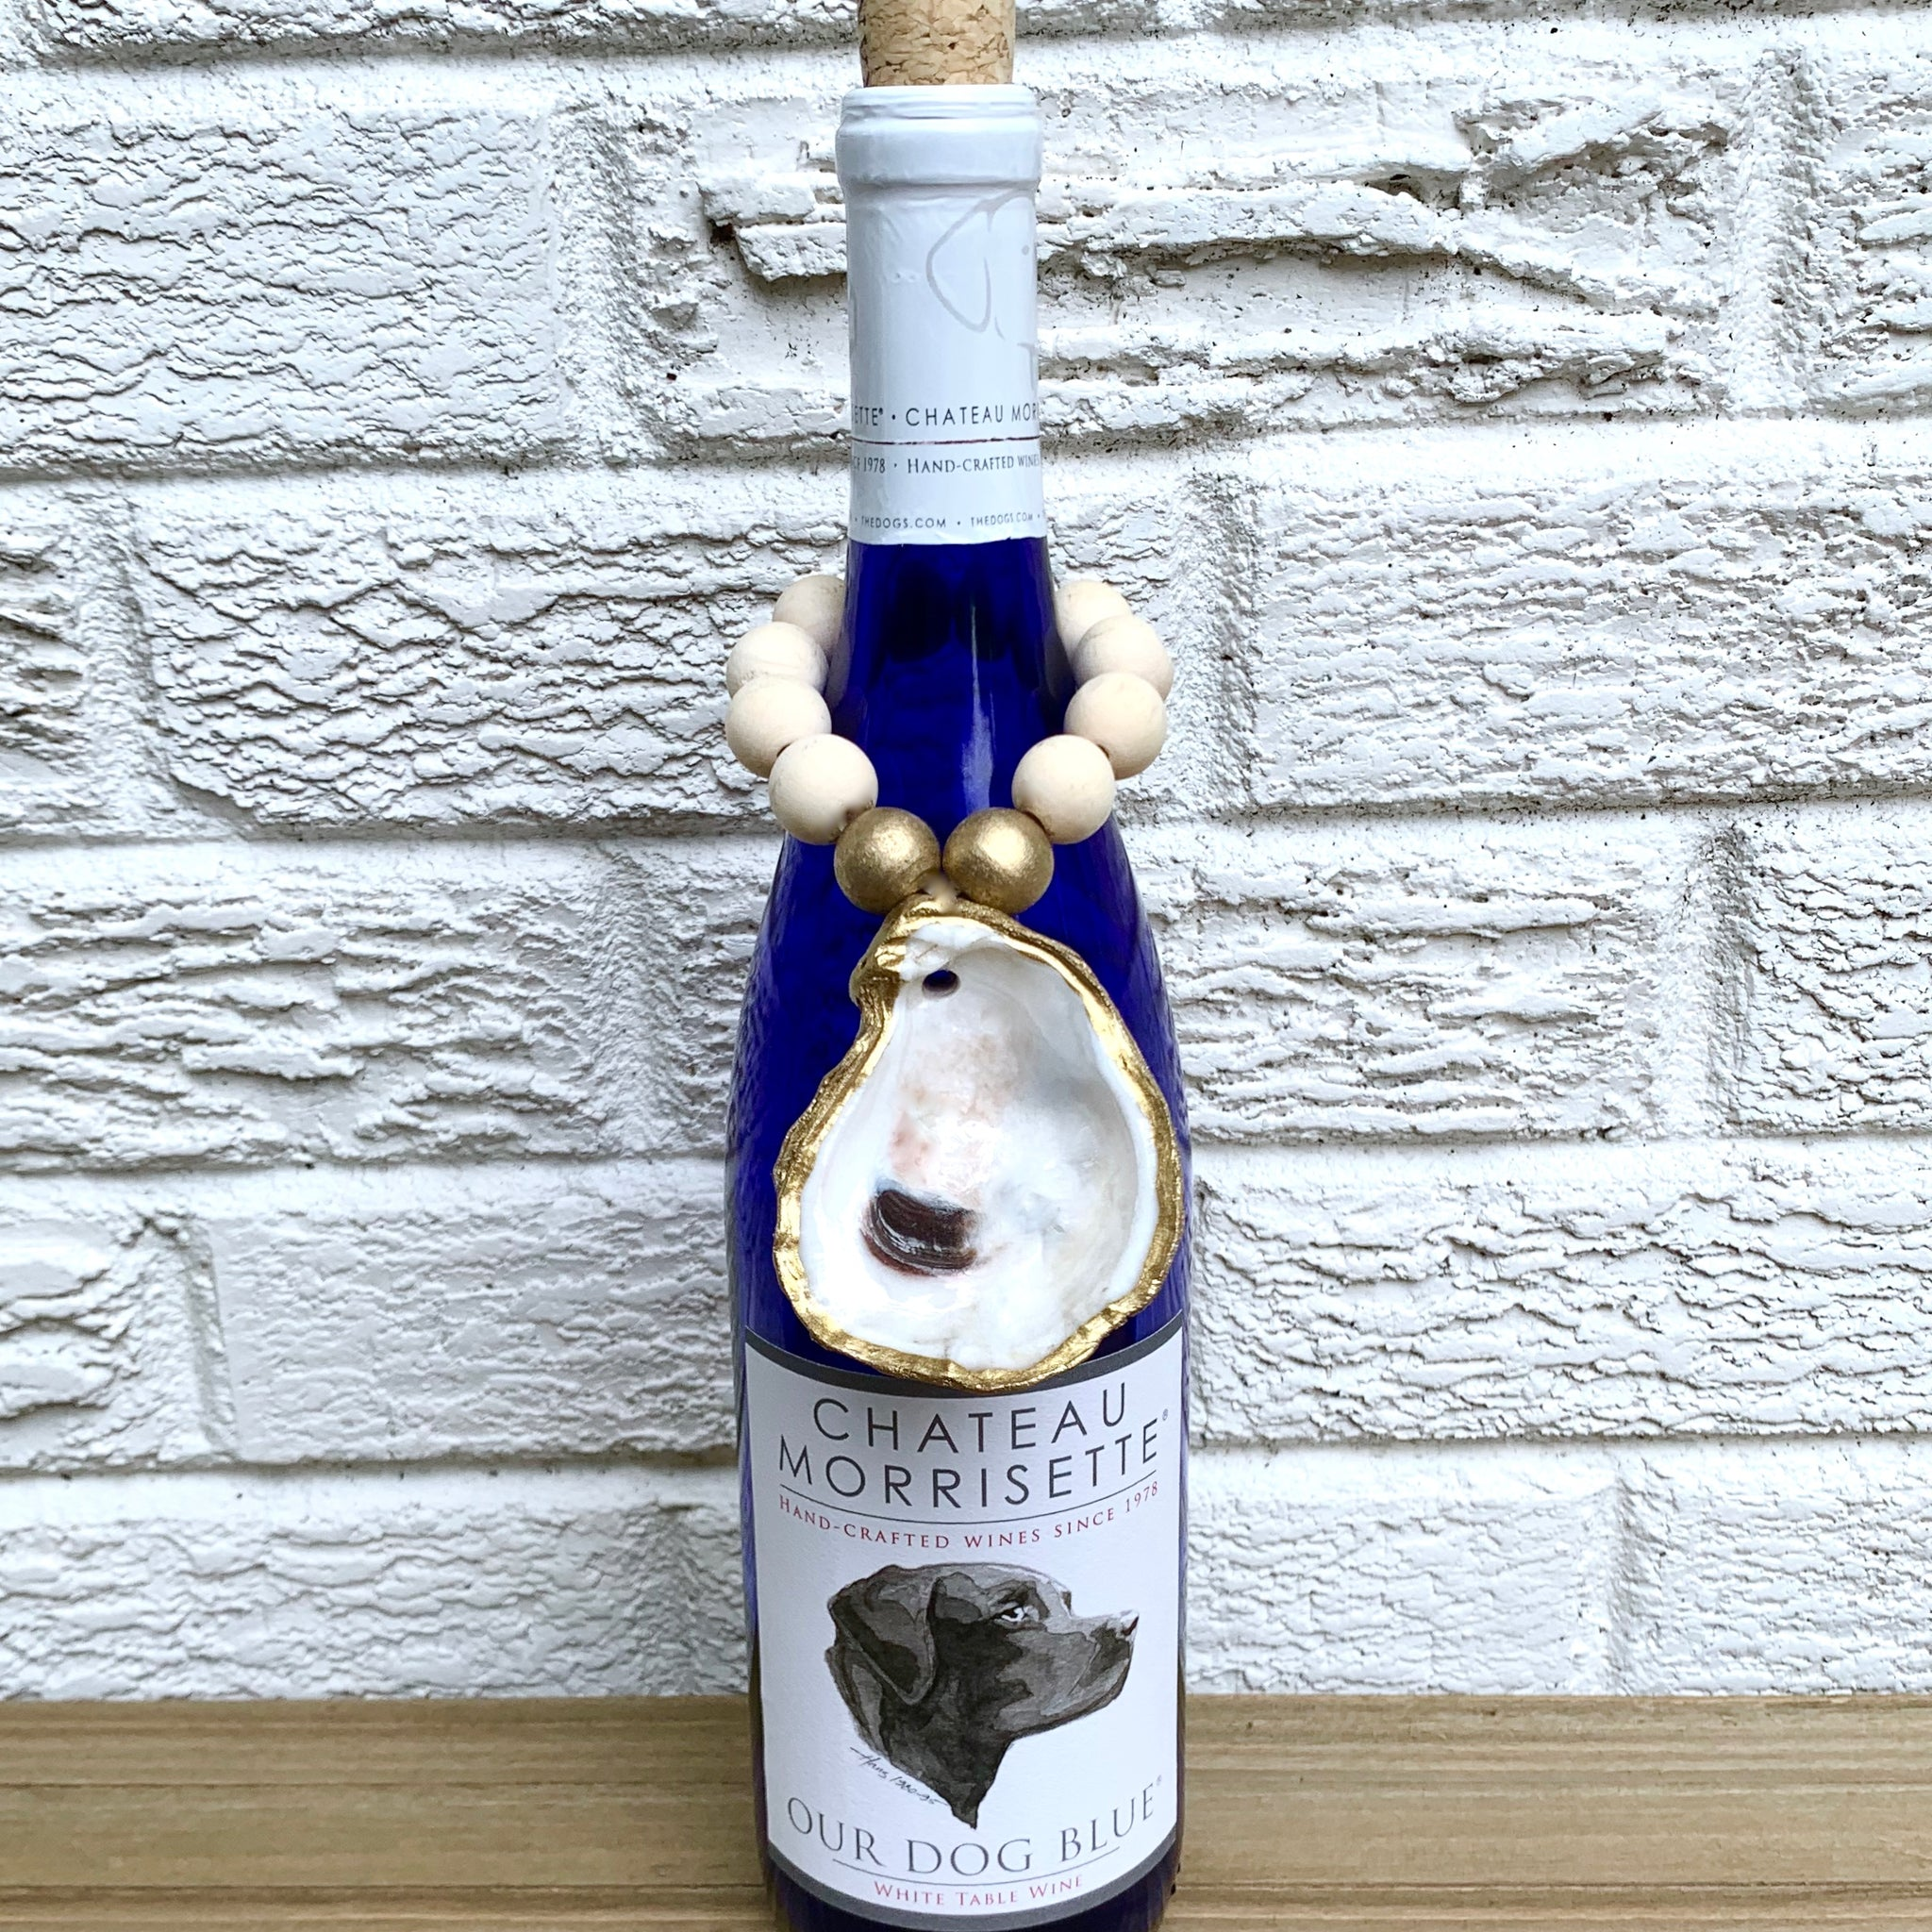 Oyster Shell Wine Bottle Accessories